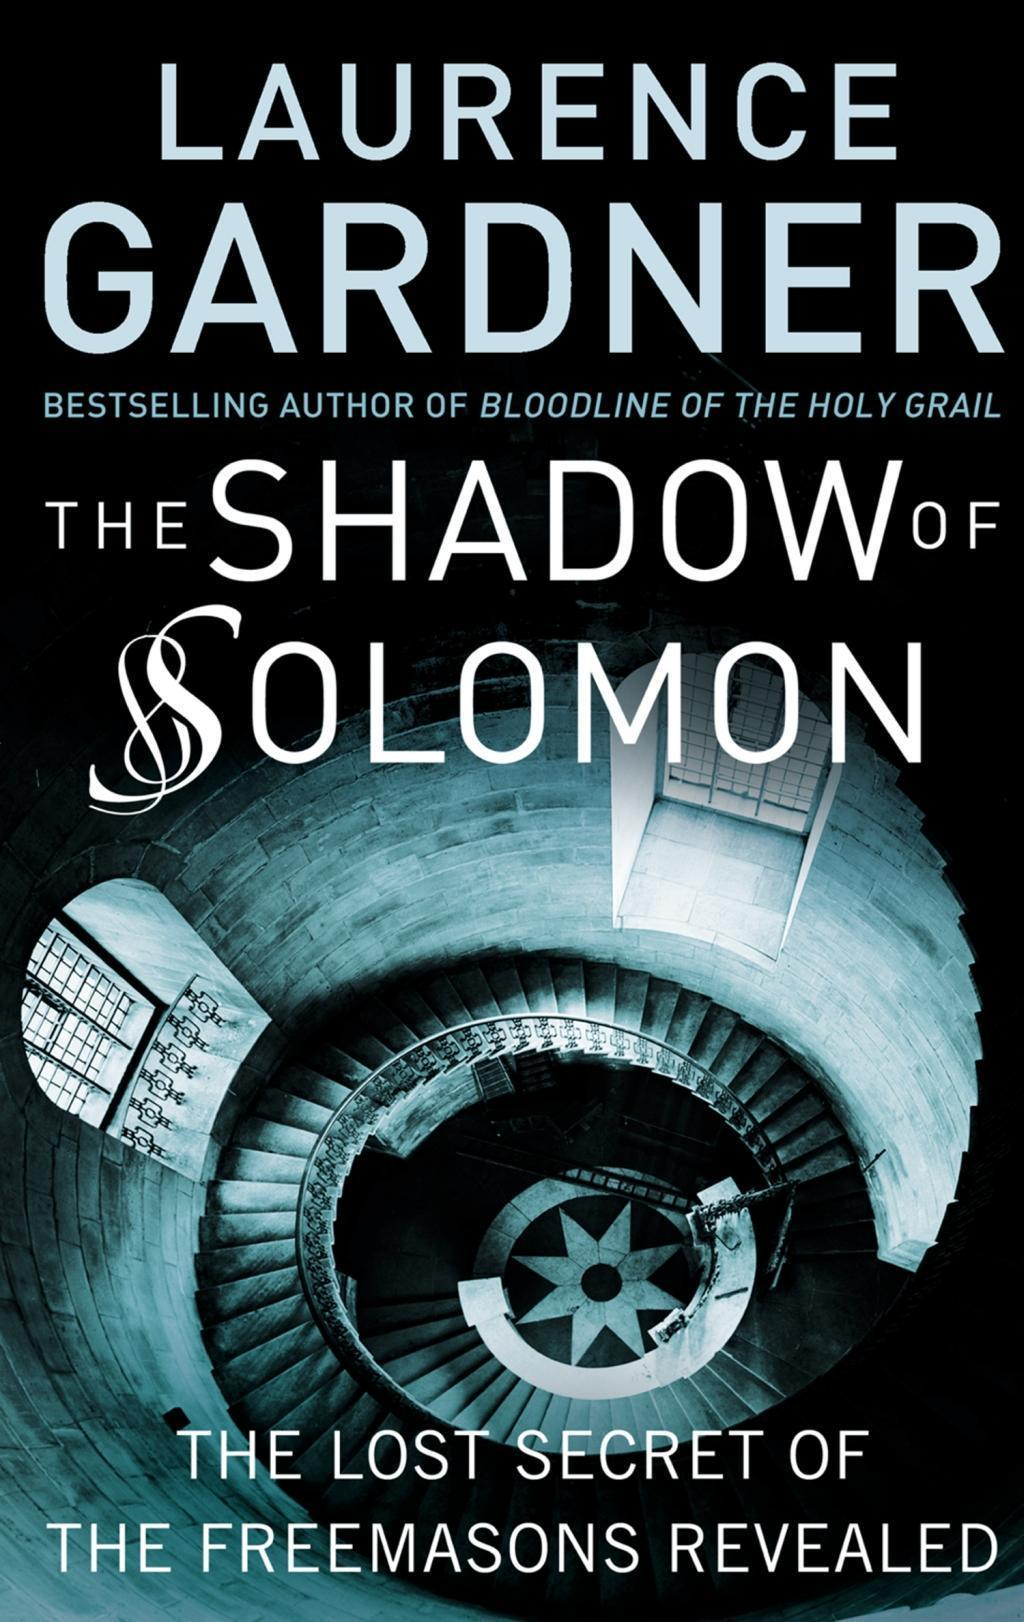 The Shadow of Solomon: The Lost Secret of the Freemasons Revealed